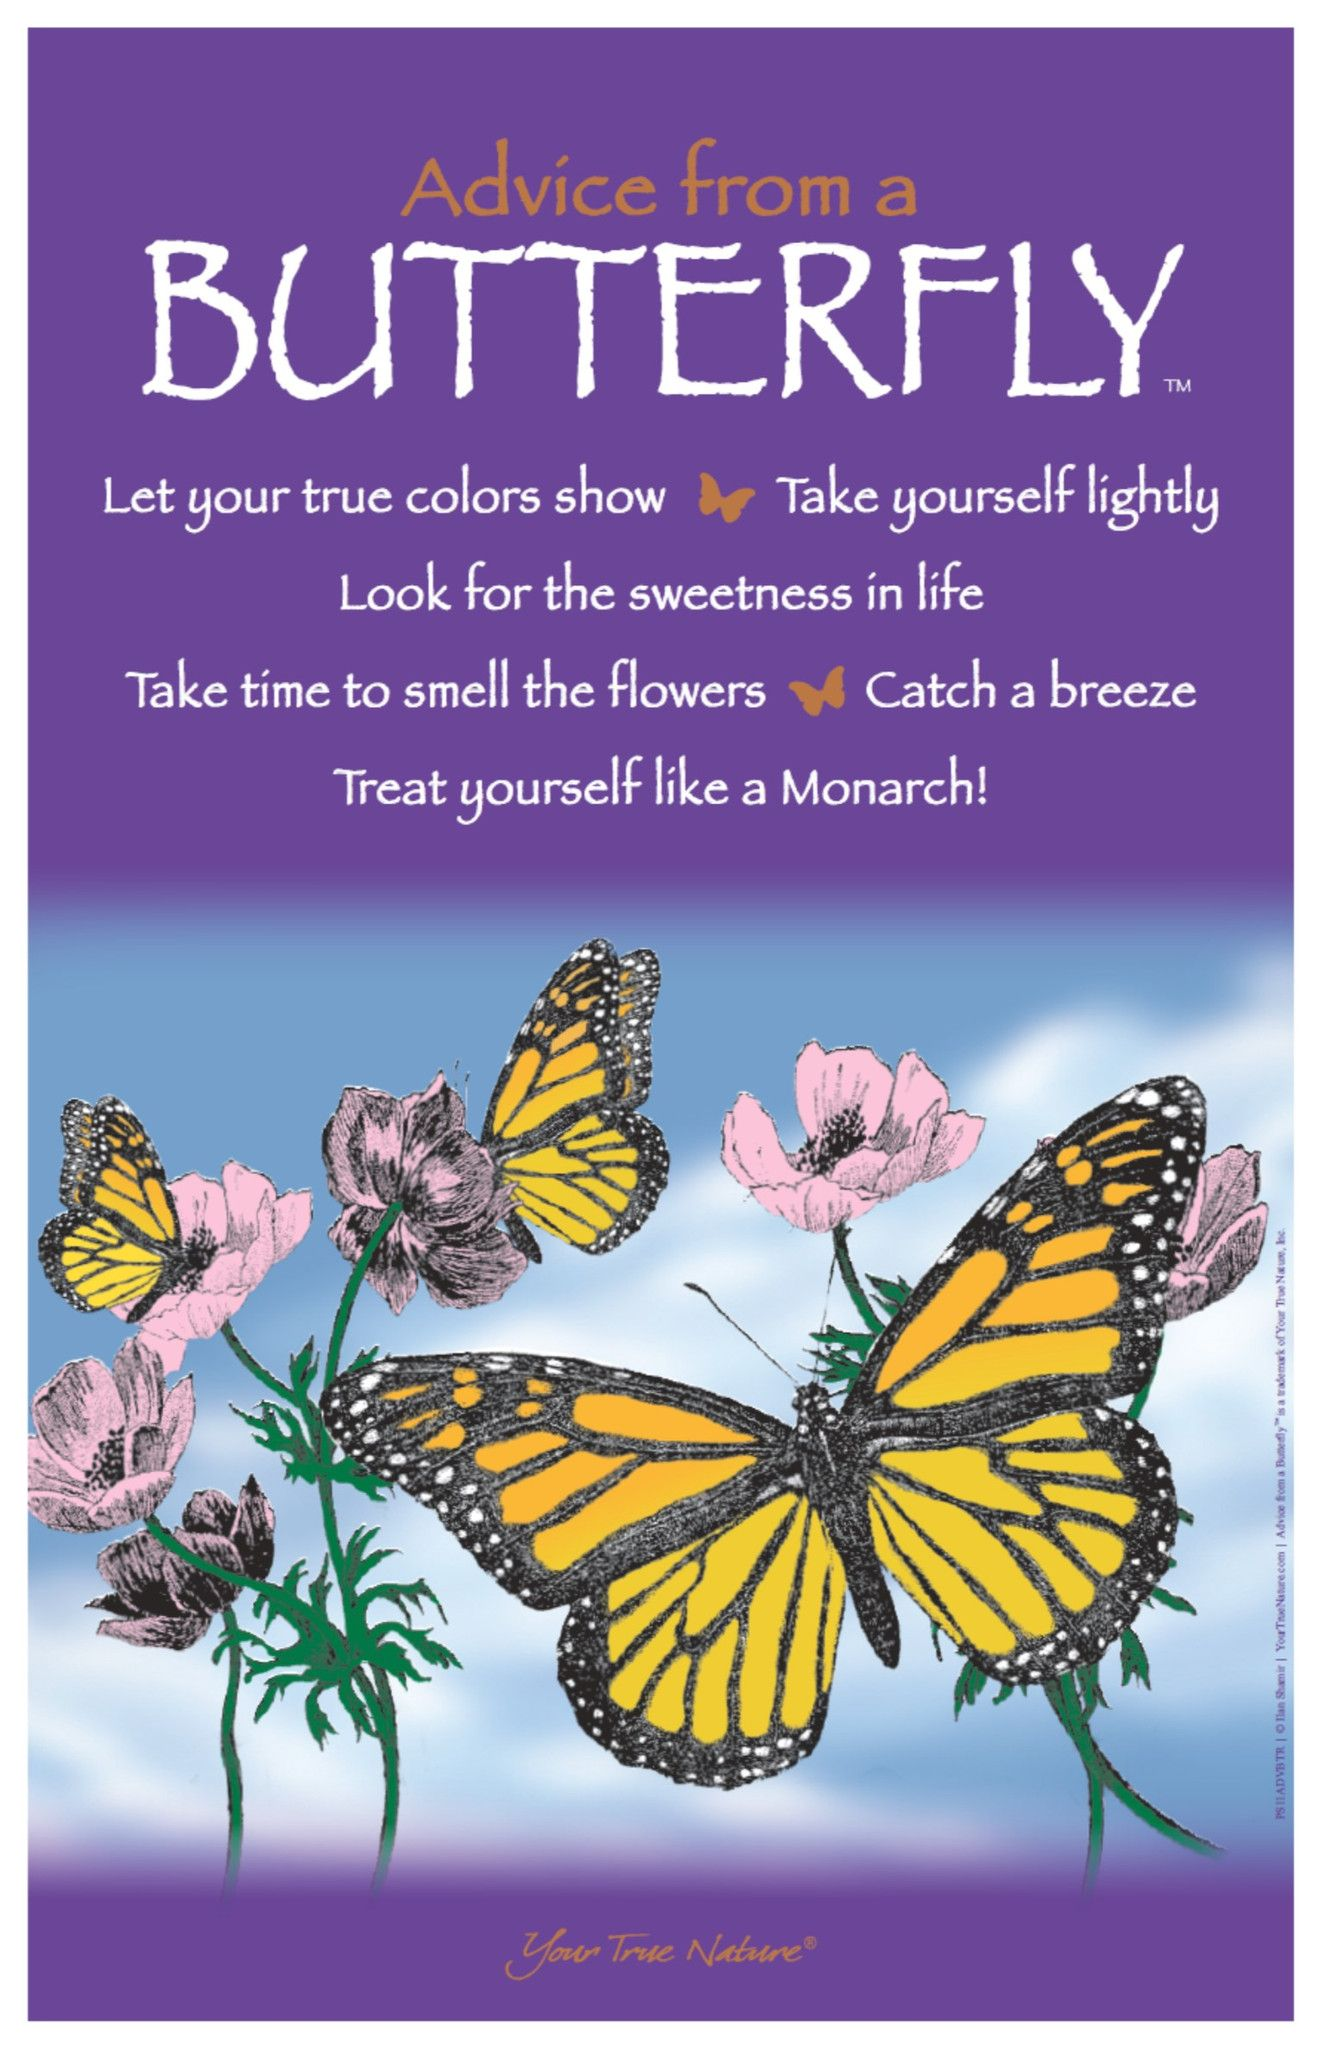 Advice From An Eagle Frameable Art Postcard Your True Nature Inc Butterfly Quotes Butterfly Inspiration Flower Quotes